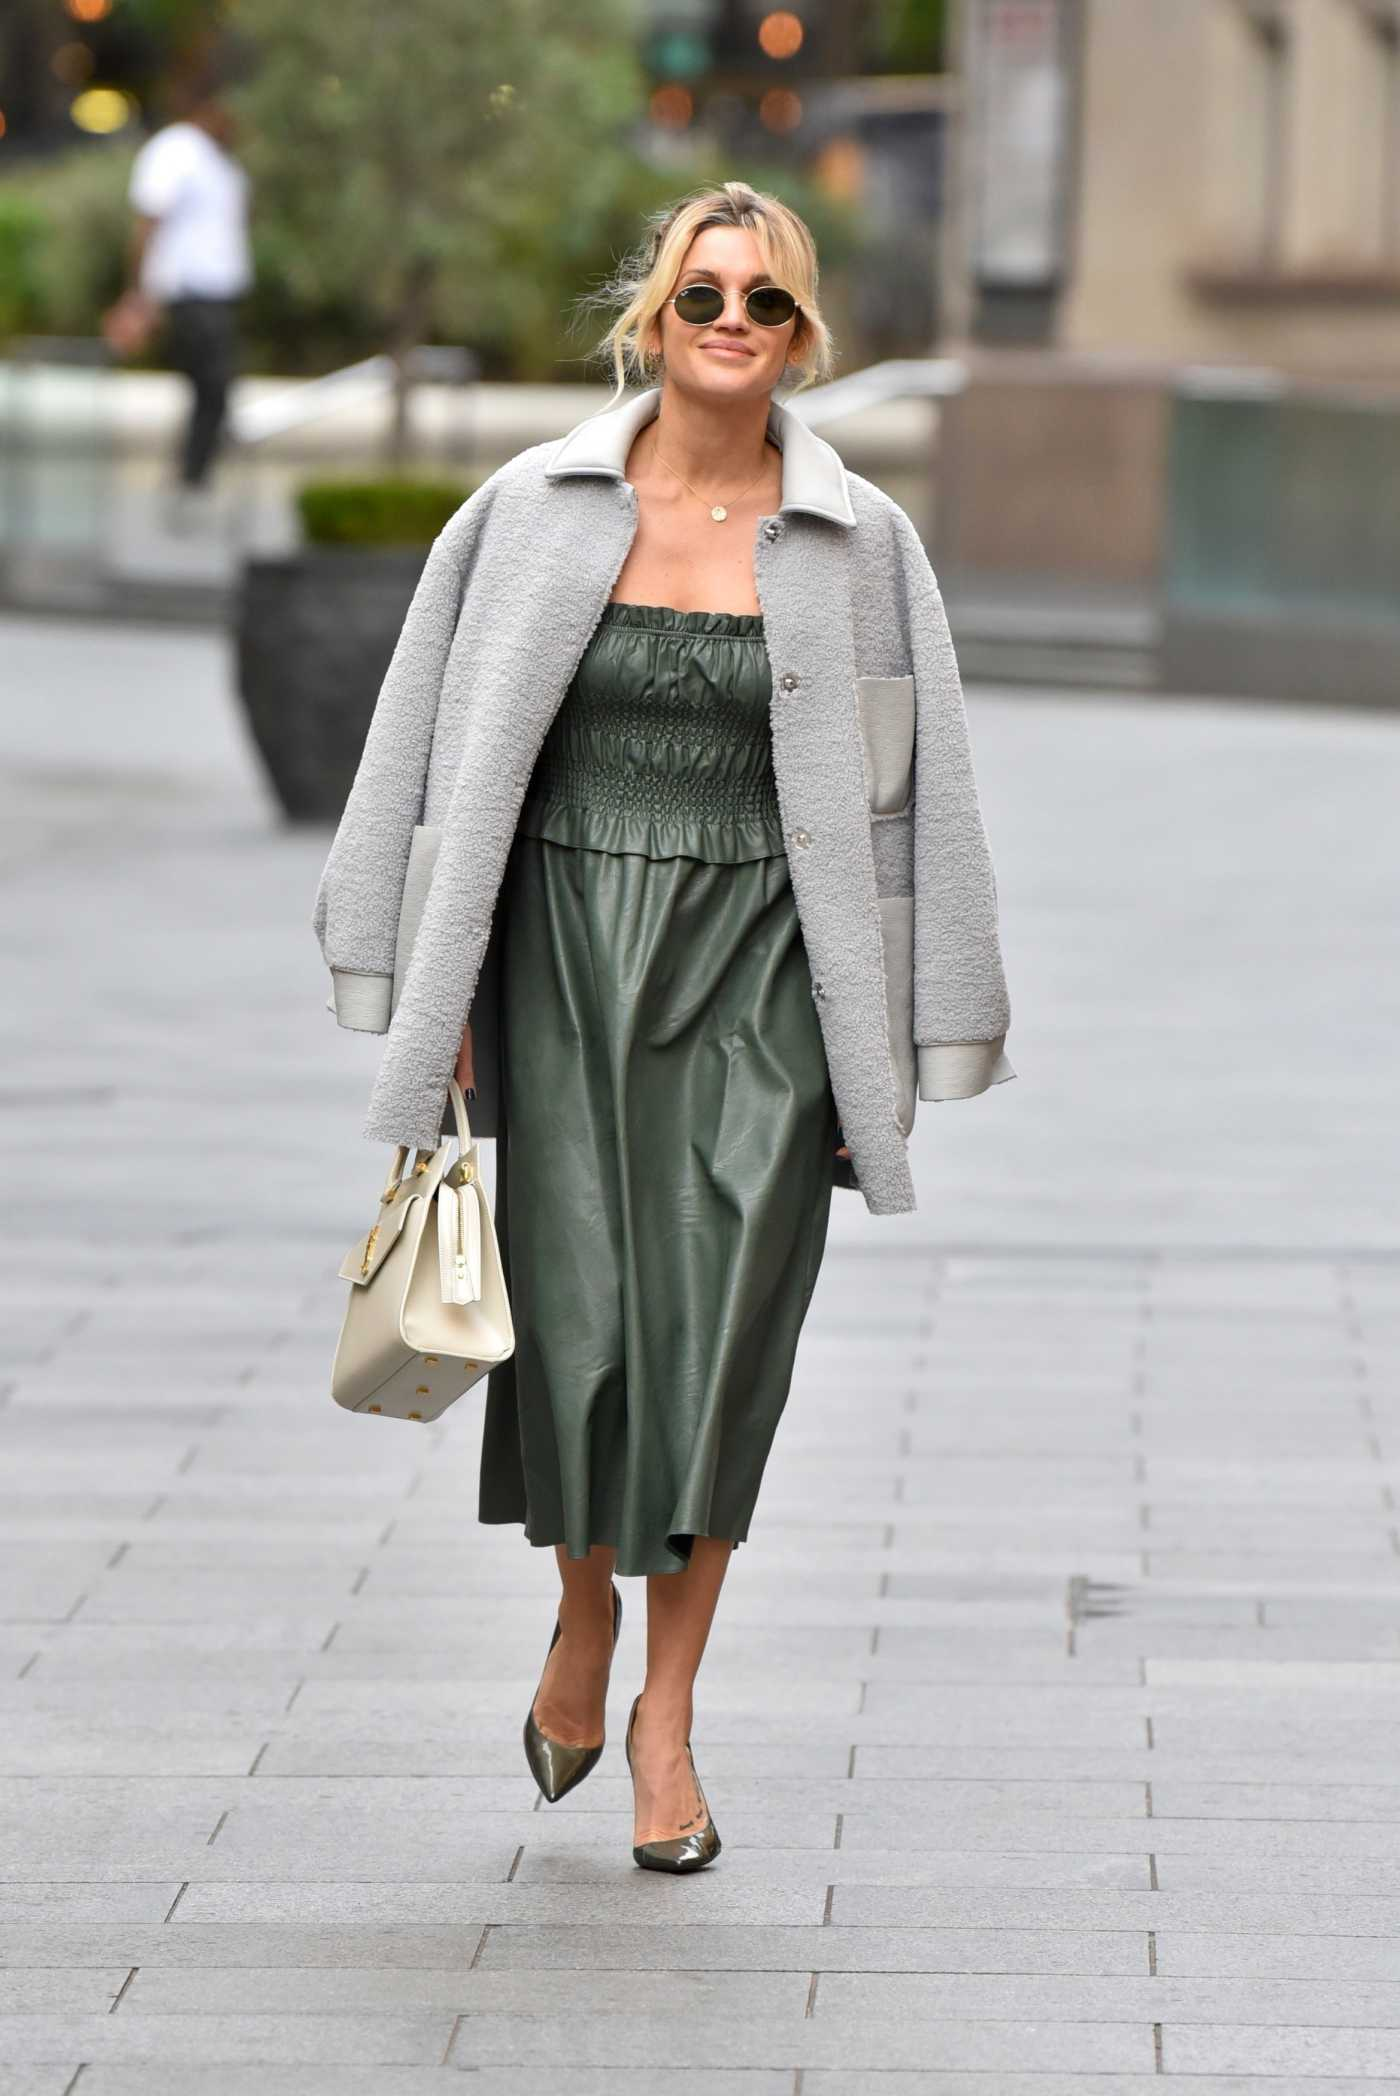 Ashley Roberts in a Green Dress Leaves the Global Studios in London 10/28/2020